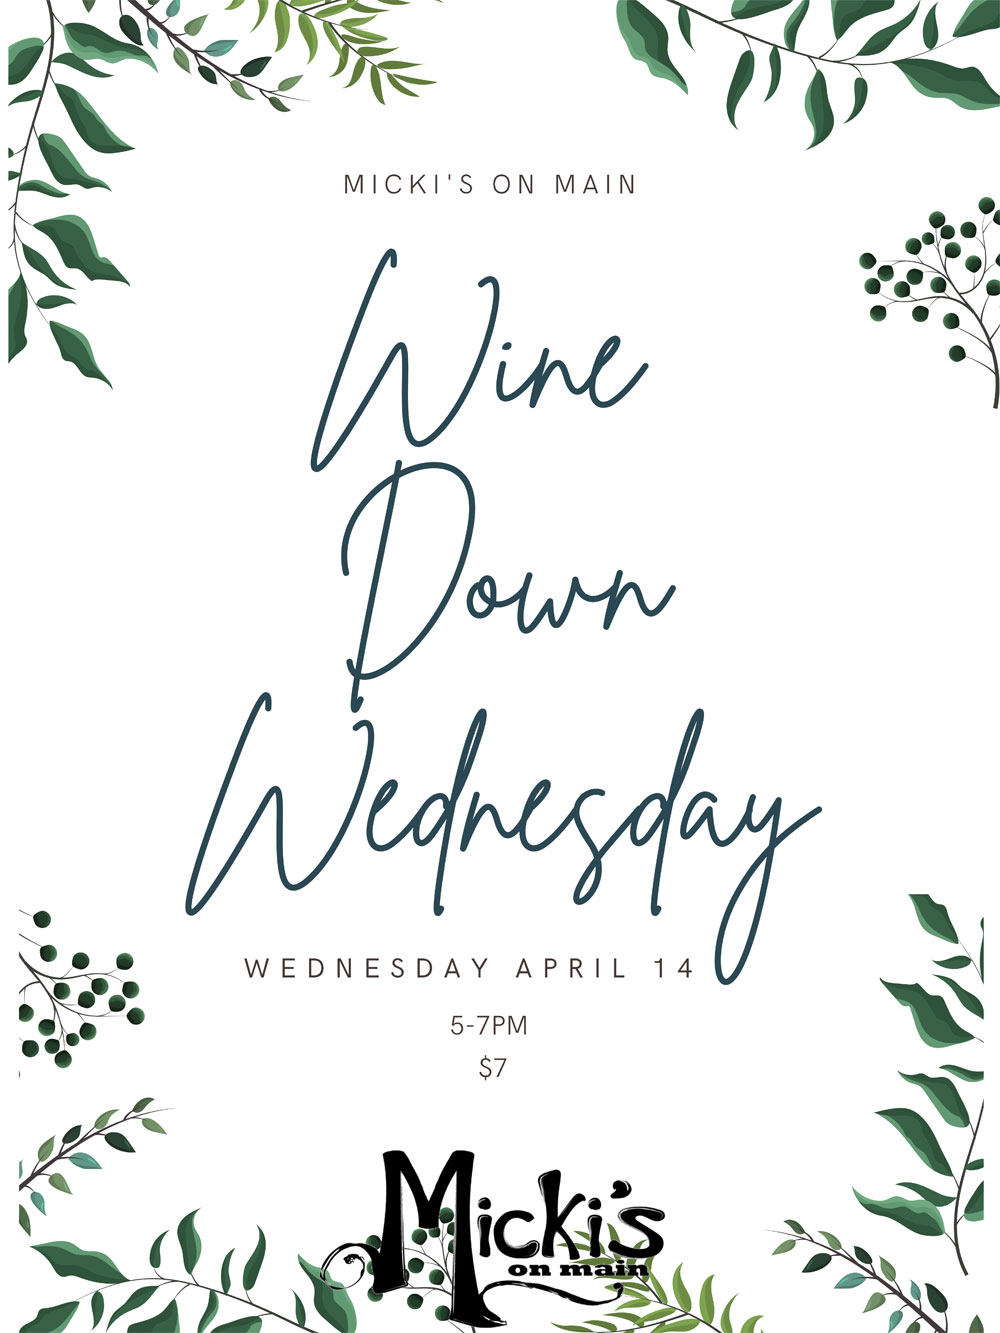 Wine Down Wednesday April 14th 5-7pm